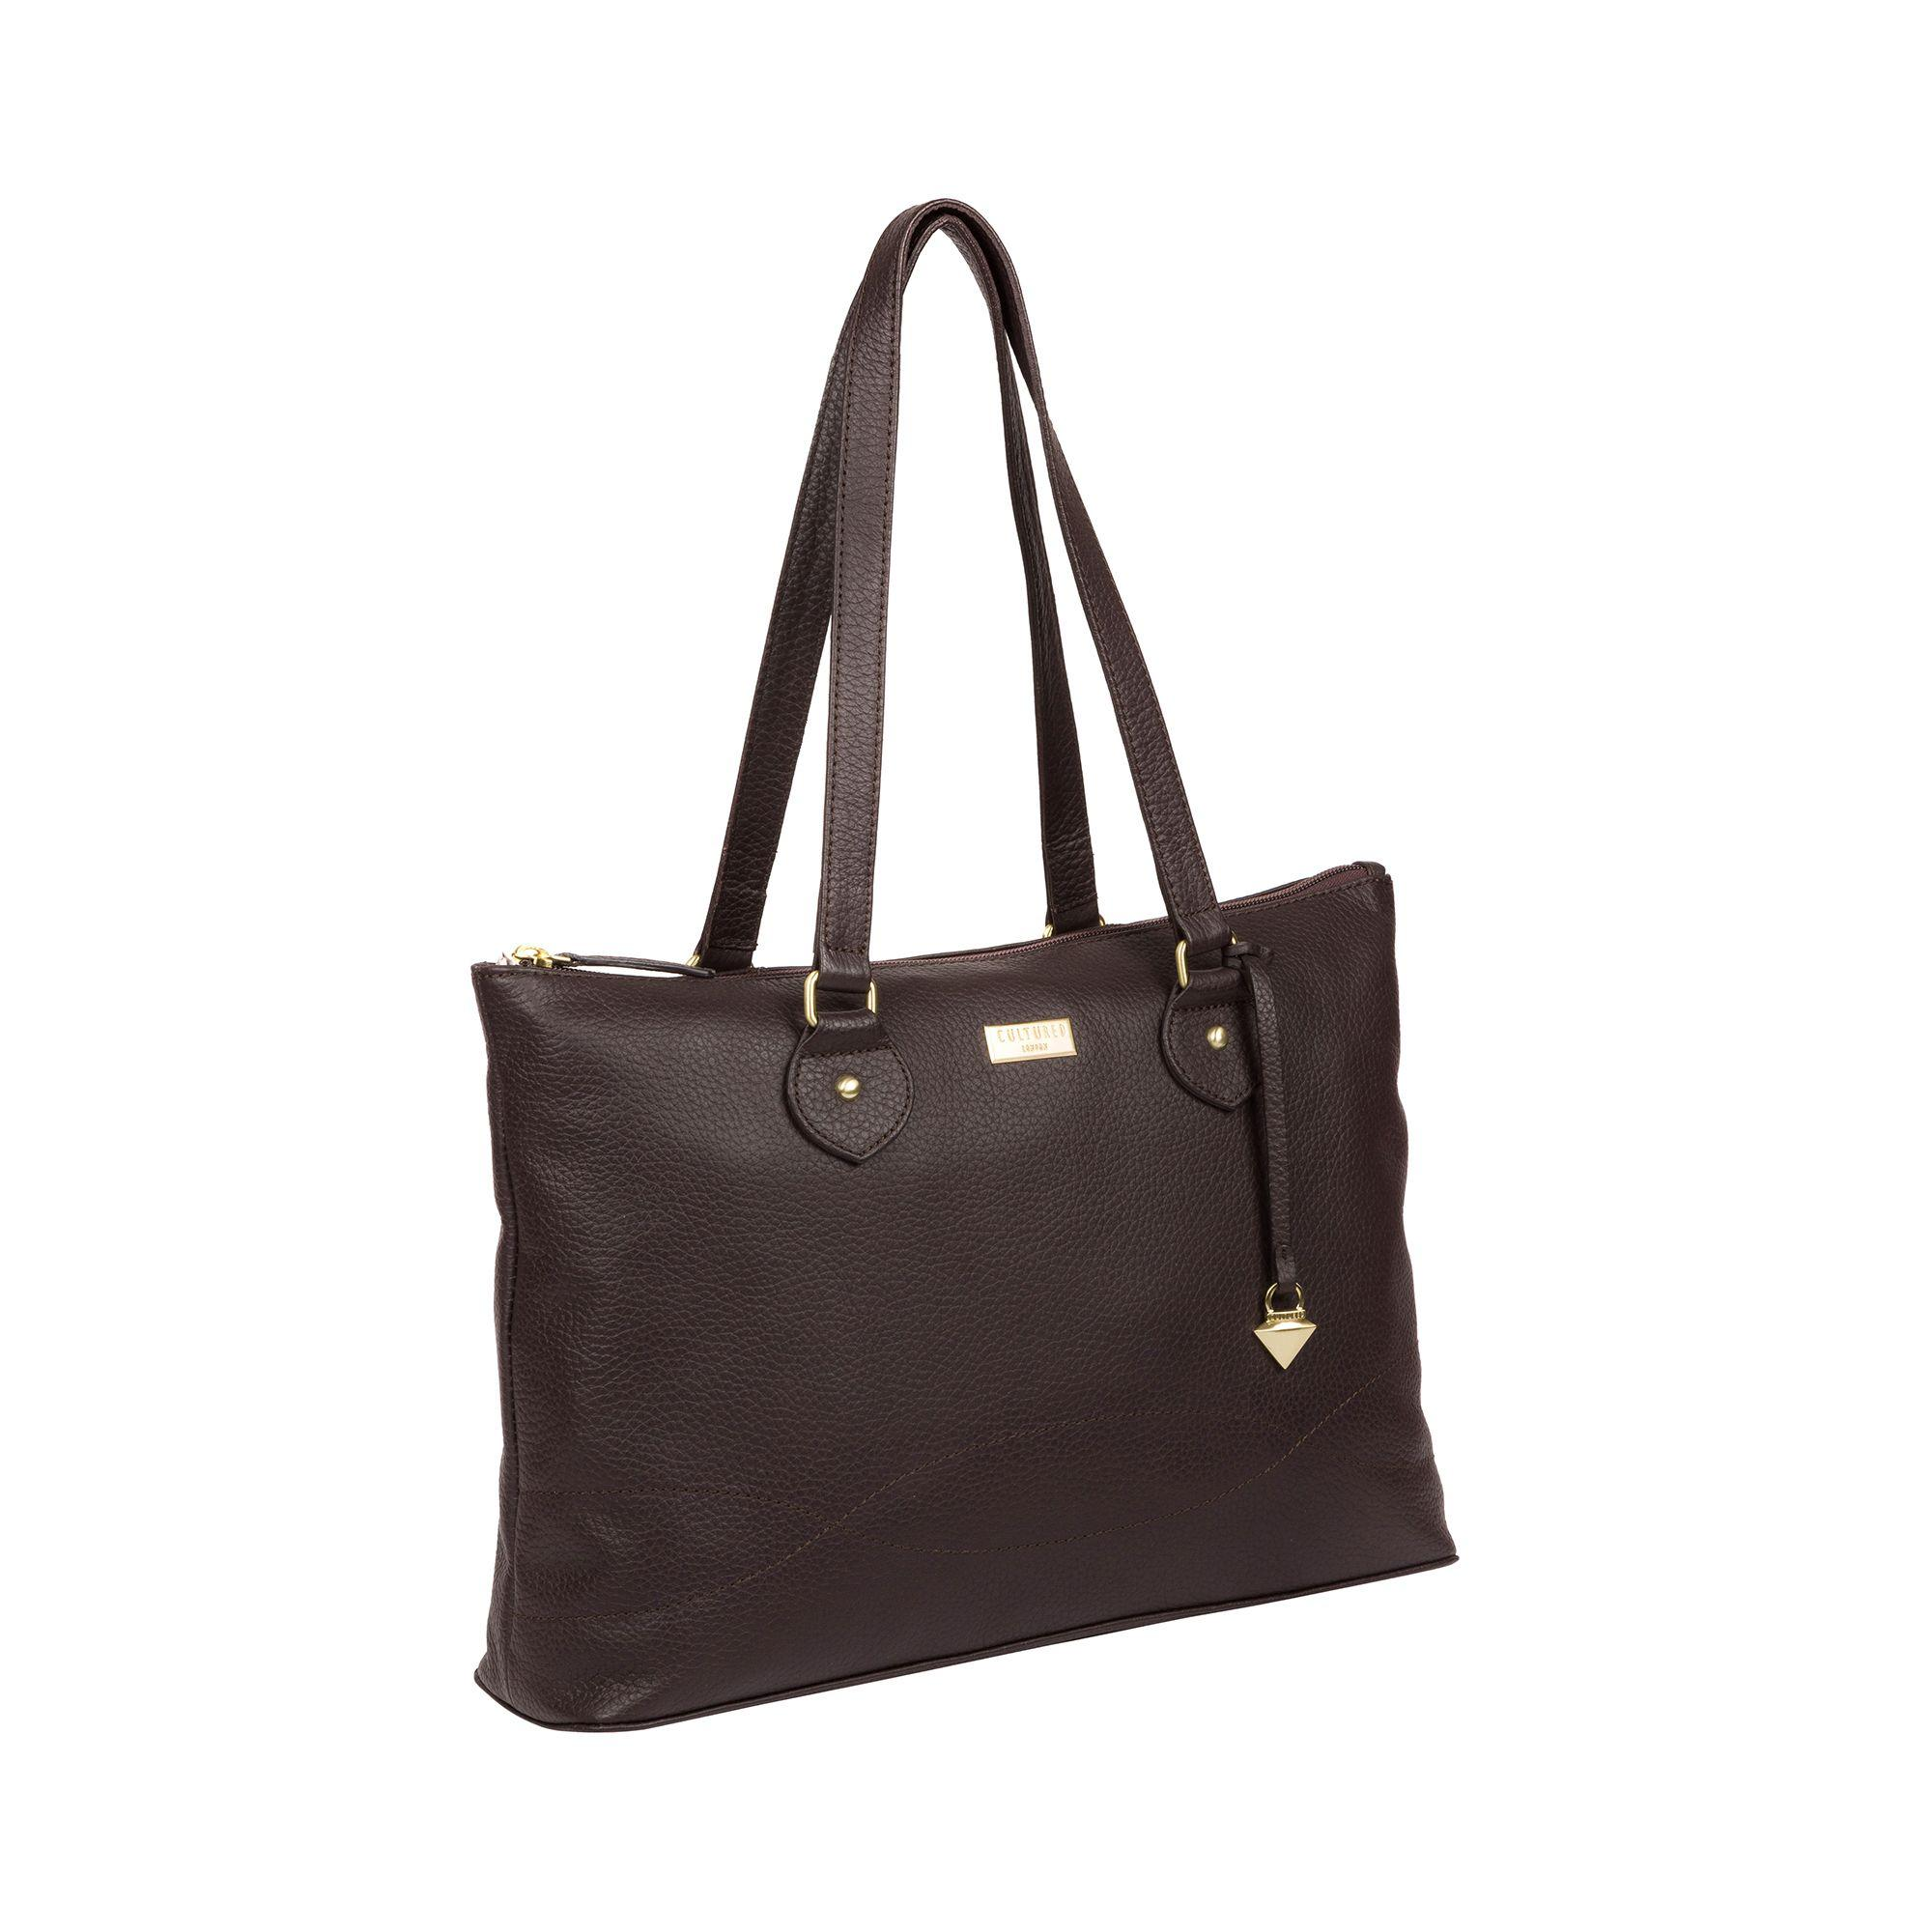 0d127bdd263 Cultured London Dark Chocolate 'pippa' Leather Tote Bag in Brown ...